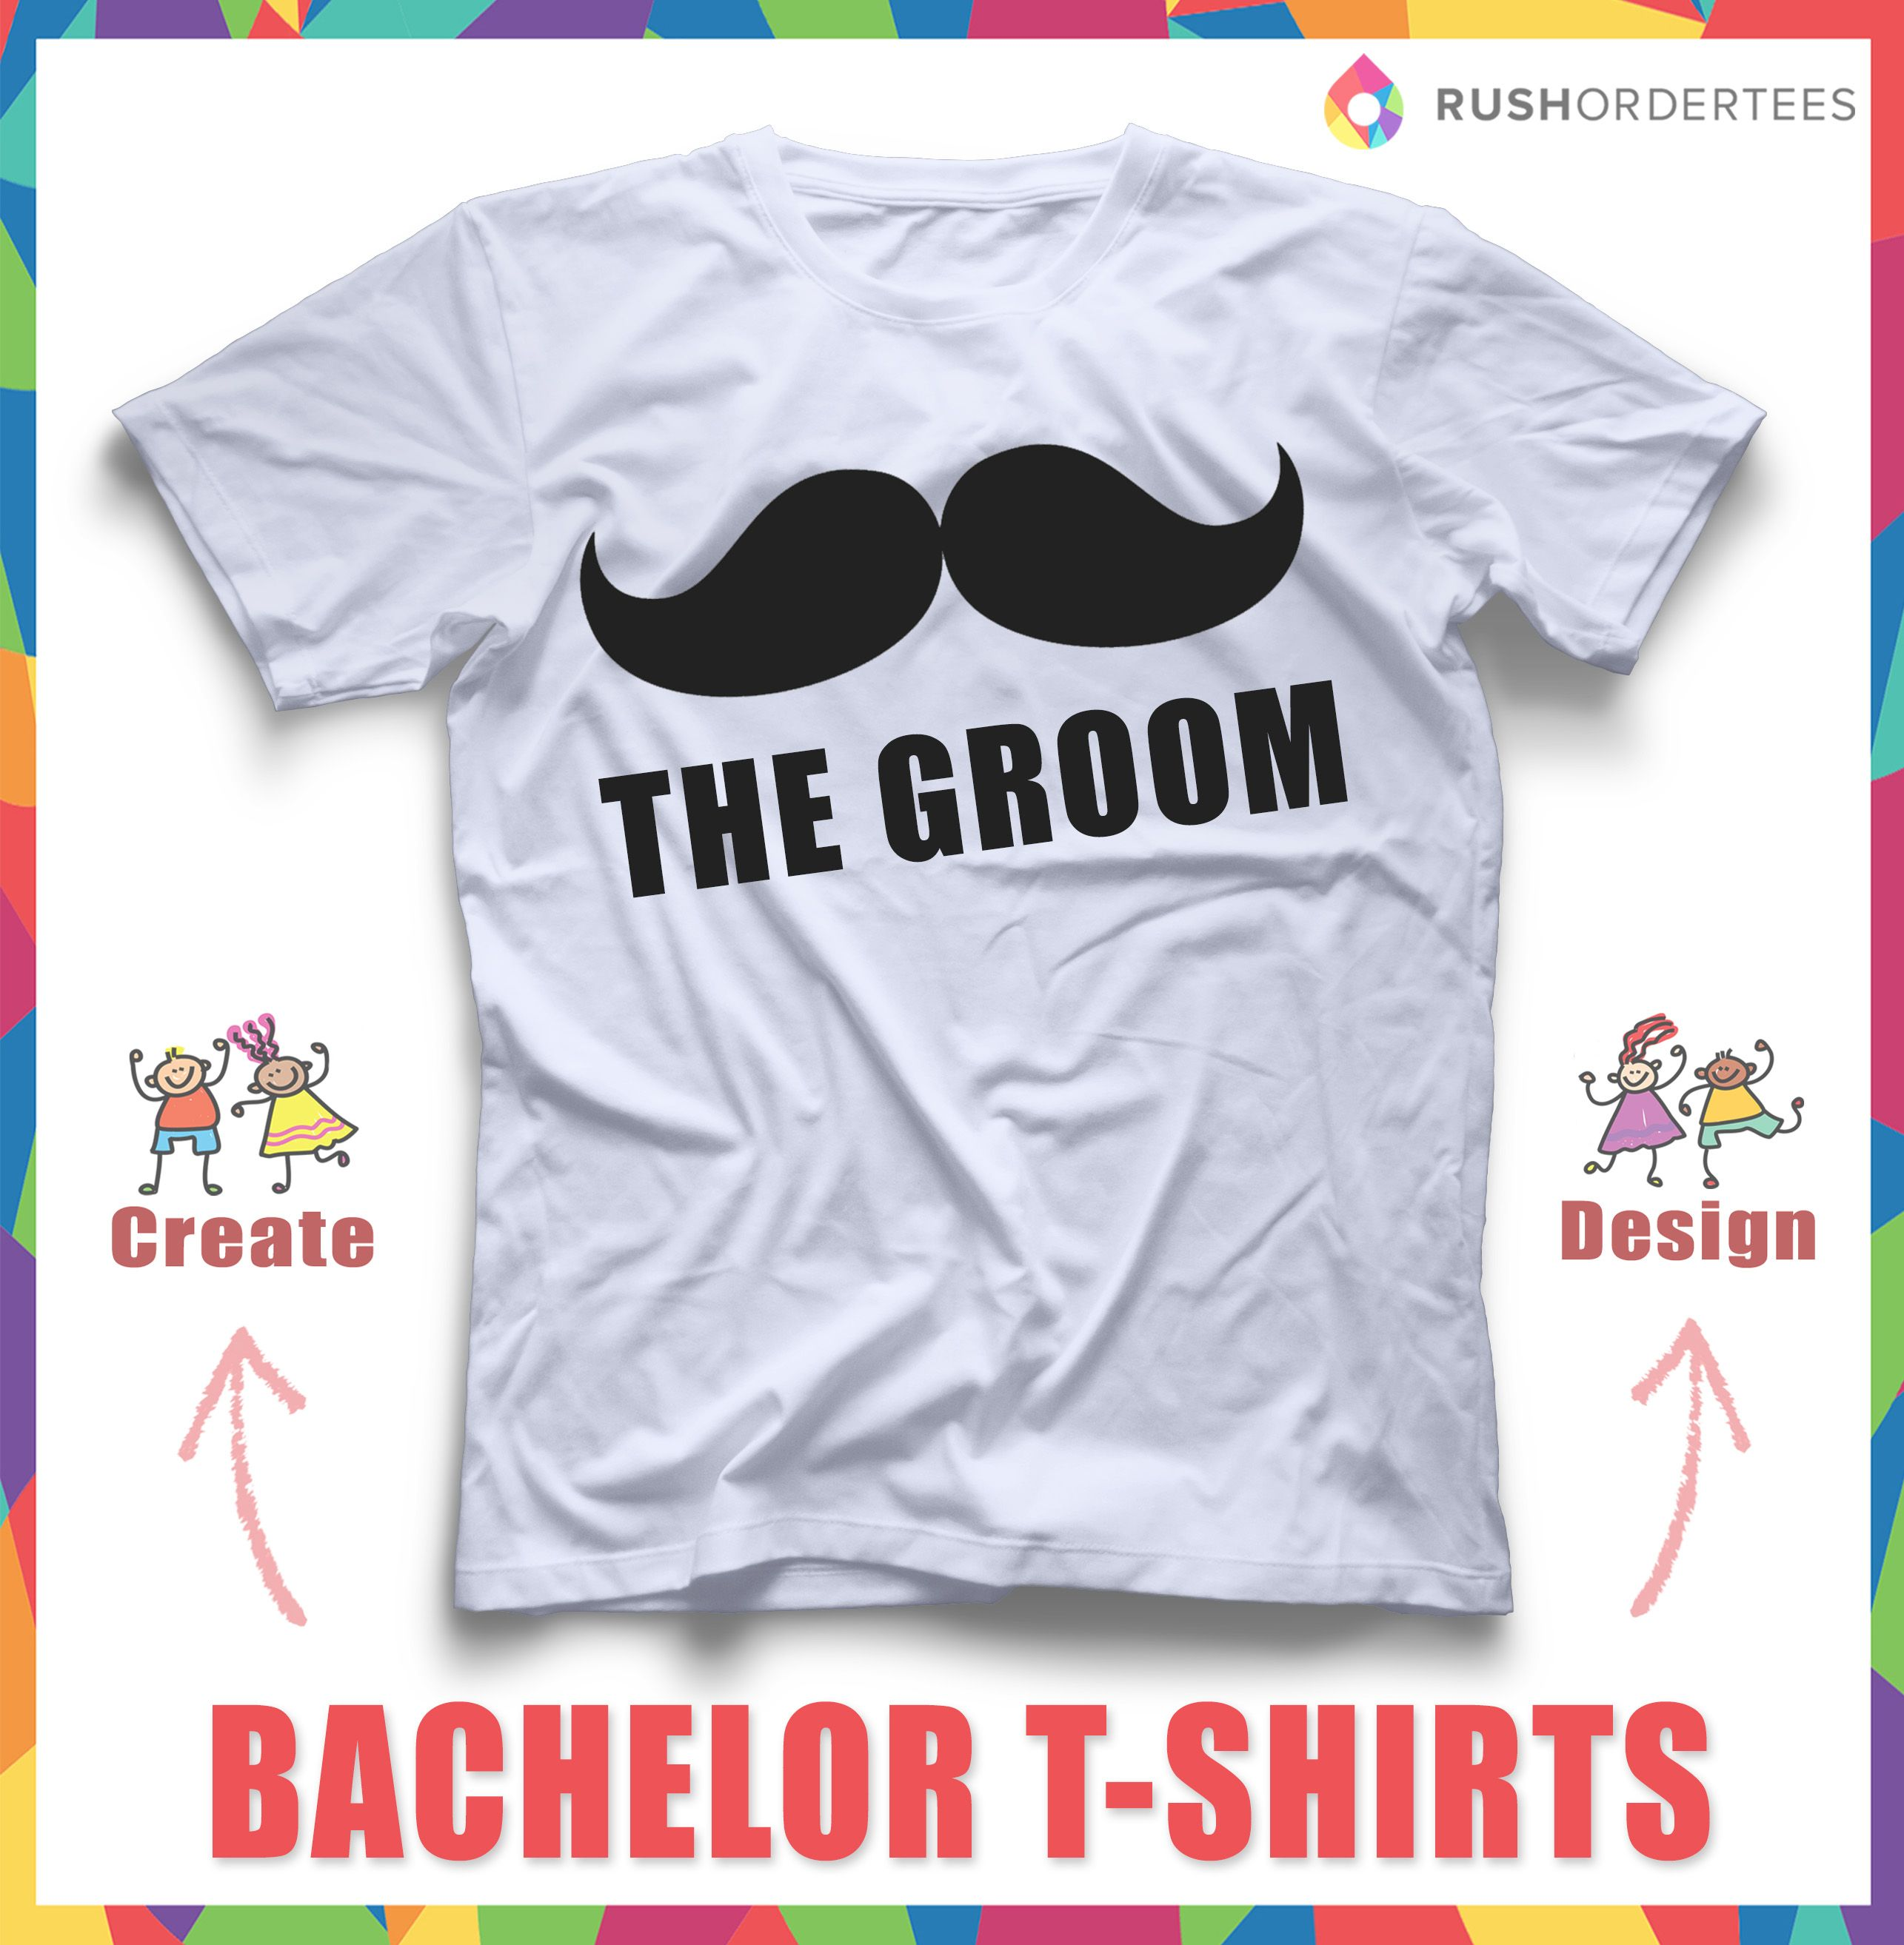 Shirt design easy - Use Our Easy Design Templates To Create Custom Event Apparel For Your Birthday Party Also Great For Tshirt Design Ideas